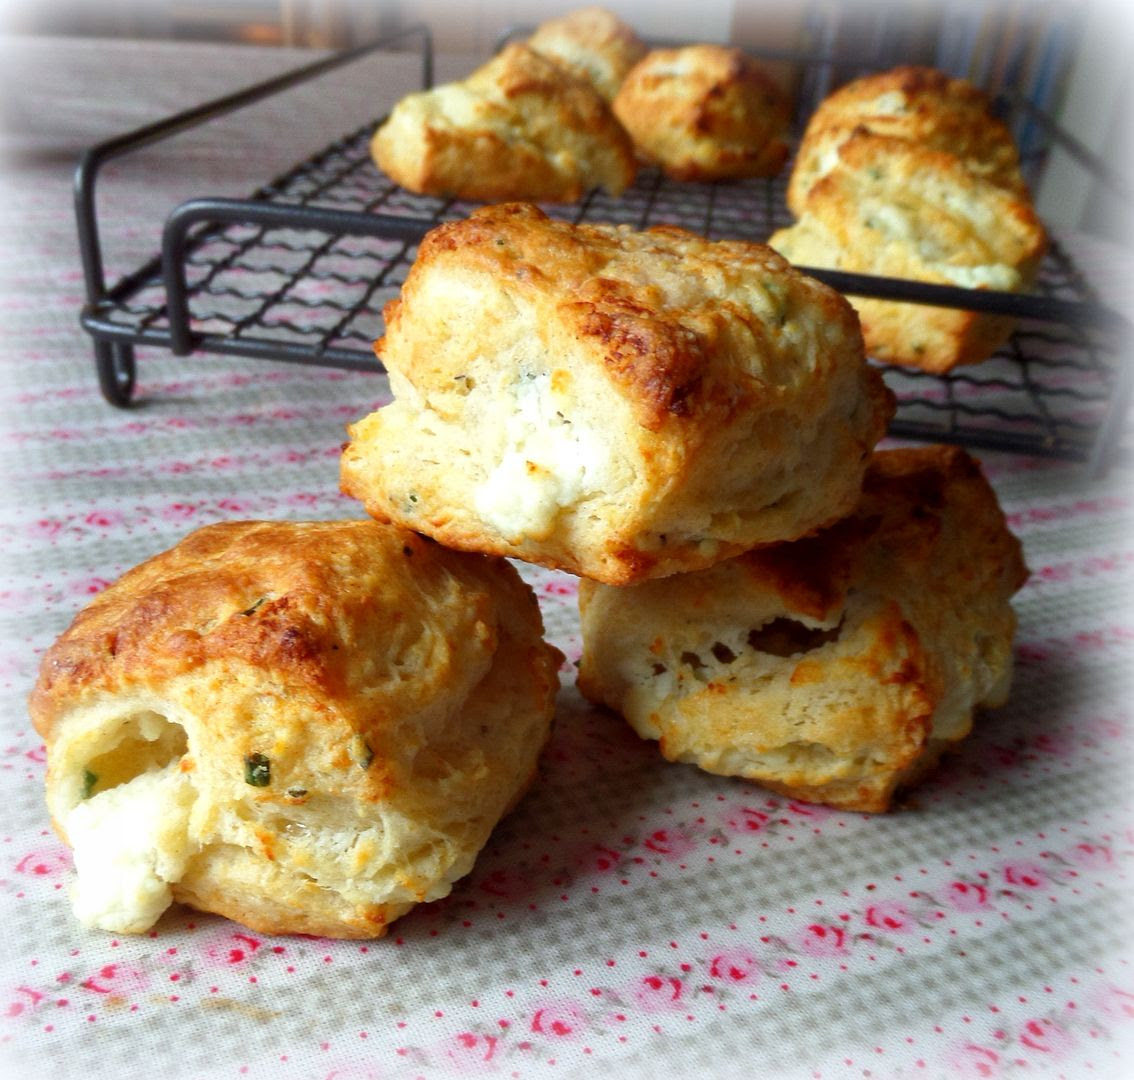 The English Kitchen: Flaky Goat Cheese and Chive Biscuits